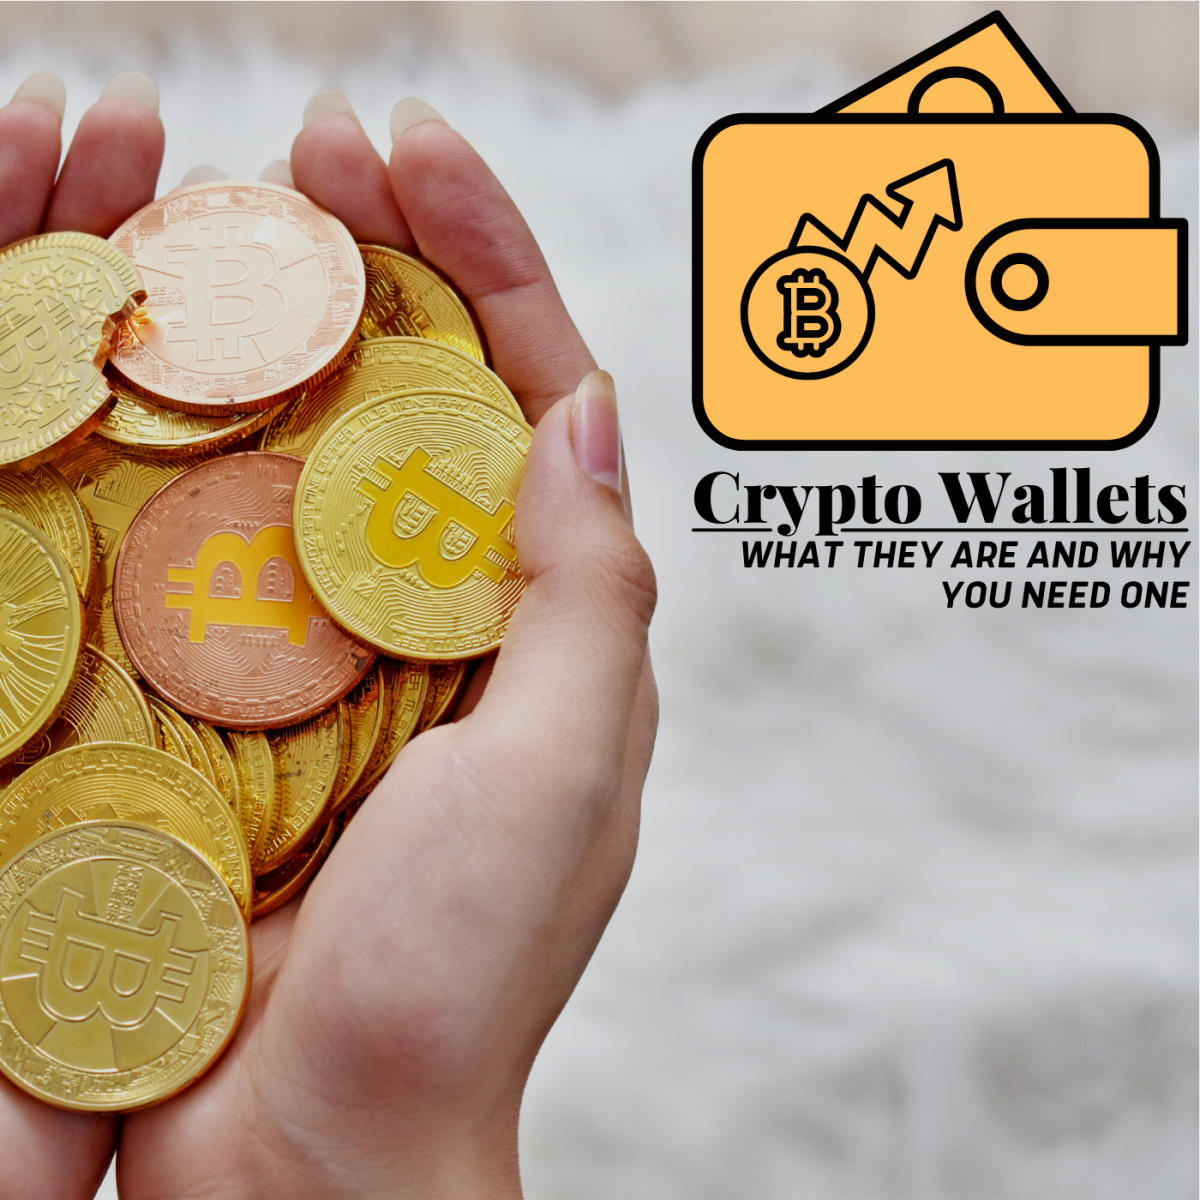 Keeping your crypto in a wallet is safer and more secure than holding it through an exchange platform like Robinhood or Coinbase.